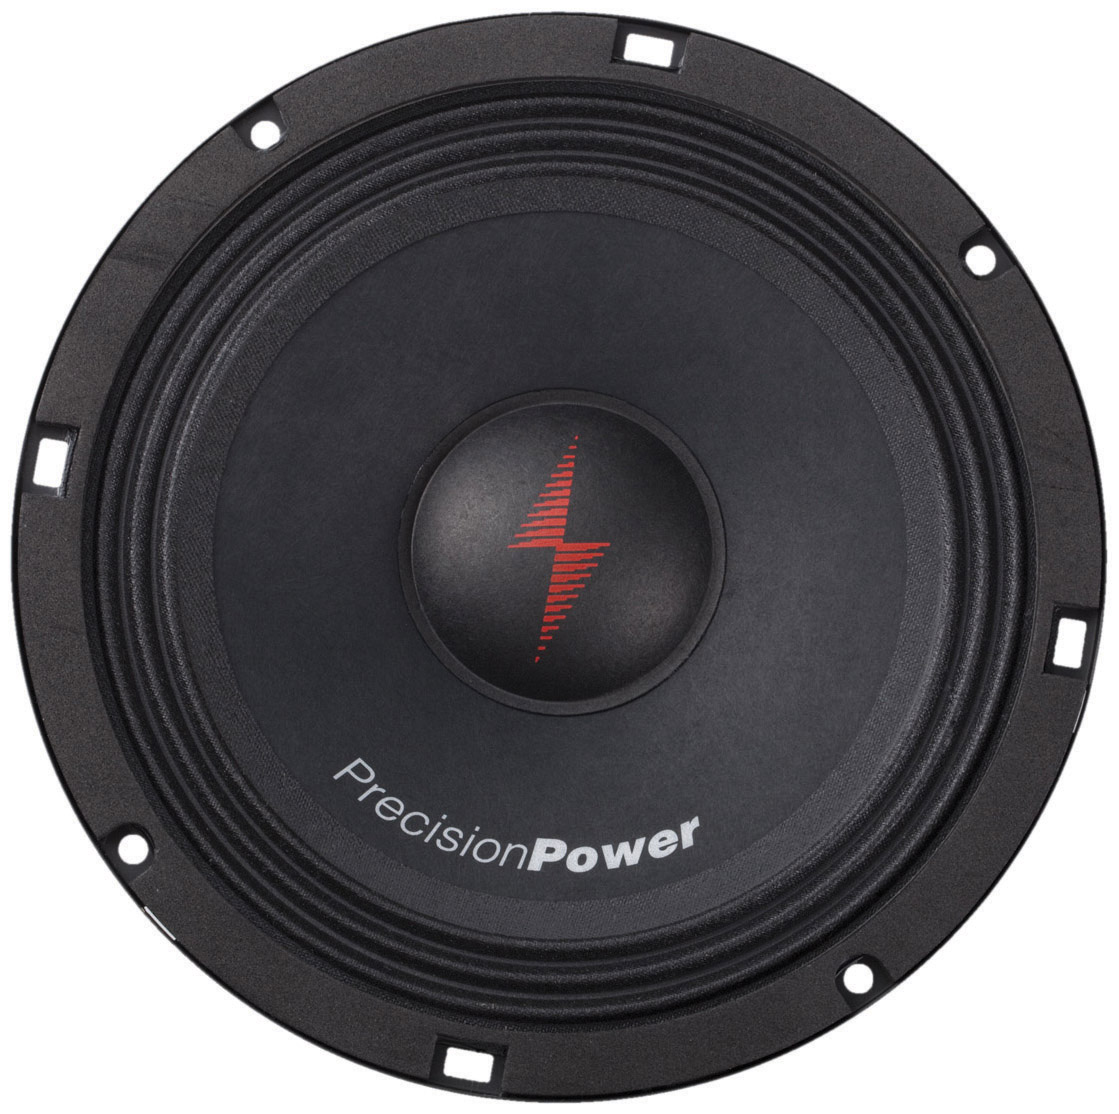 Precisionpower Pro Audio Pm.654 Midrange - 1 Pack - 150 Hz To 10 Khz - 4 Ohm (pm654)